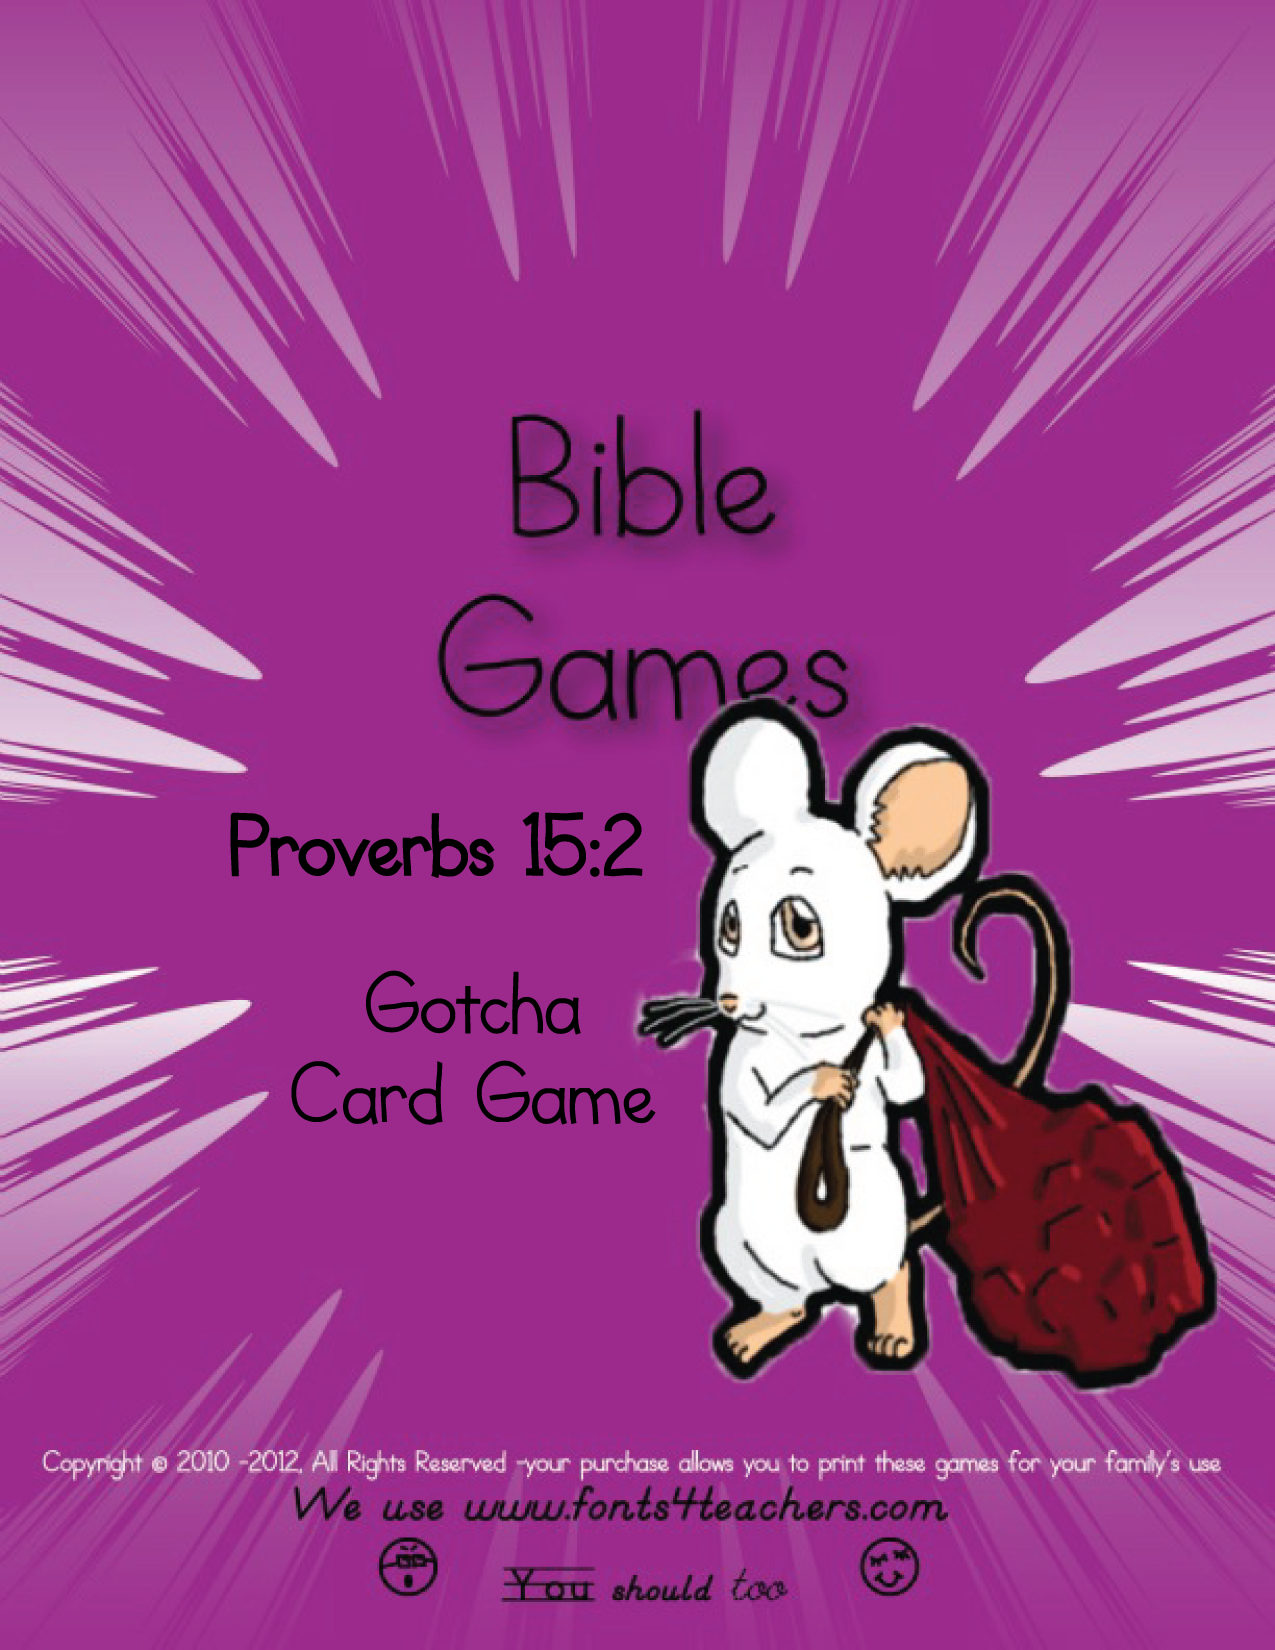 Proverbs 15:2a Free Gotcha Card Game.